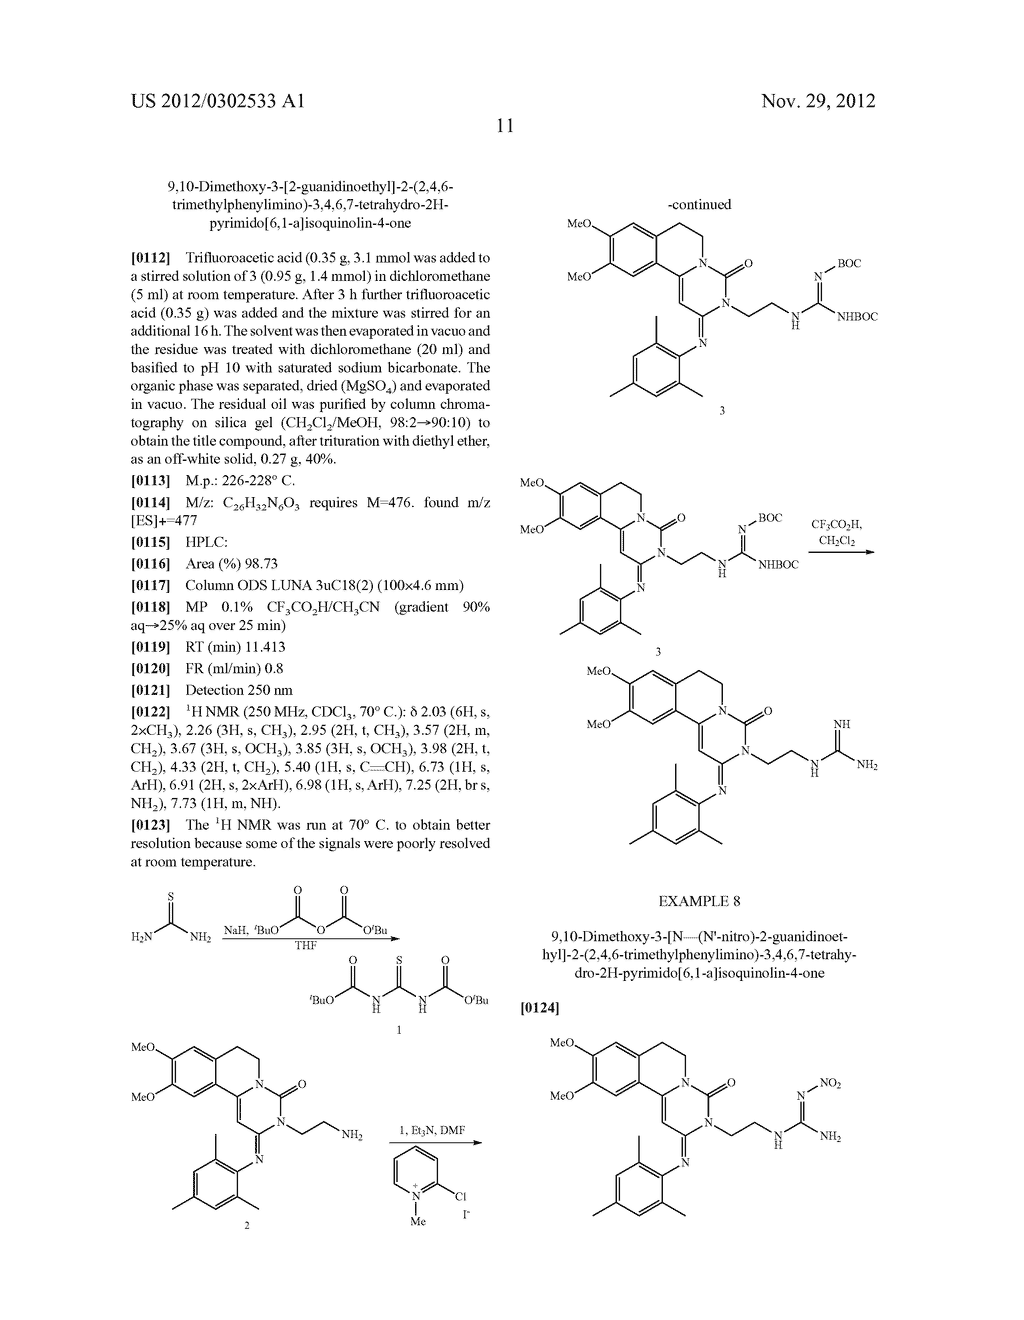 DERIVATIVES OF PYRIMIDO [6,1-A] ISOQUINOLIN-4-ONE - diagram, schematic, and image 17